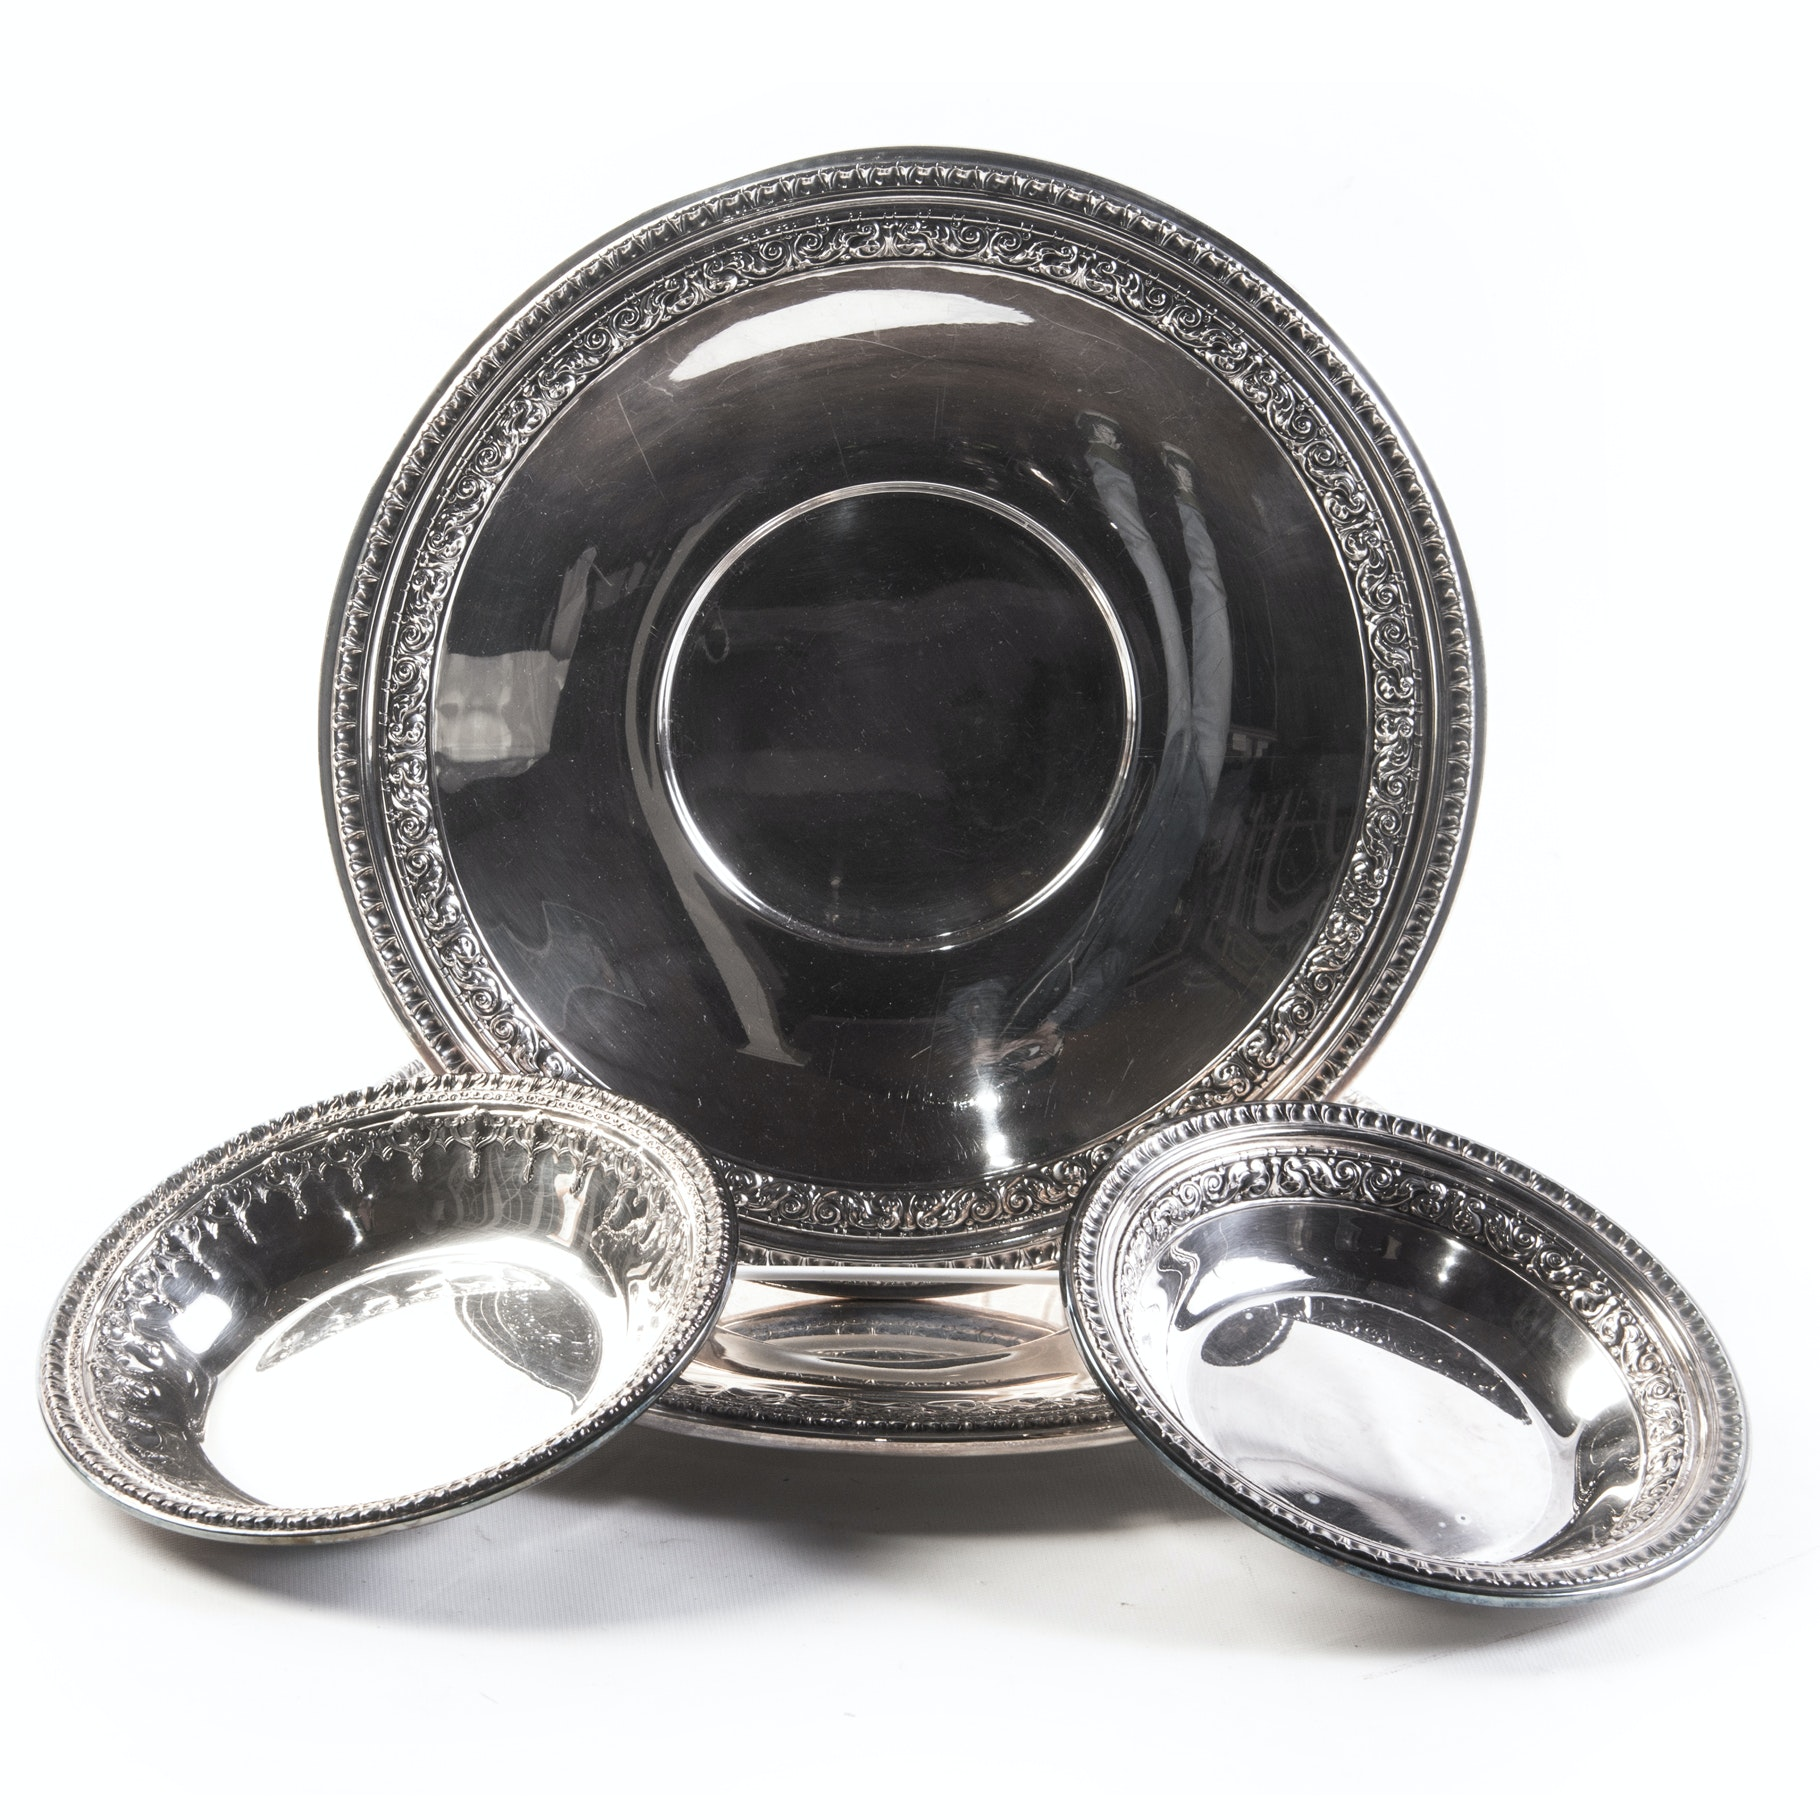 Reed & Barton Plated Silver Plates and Bowls